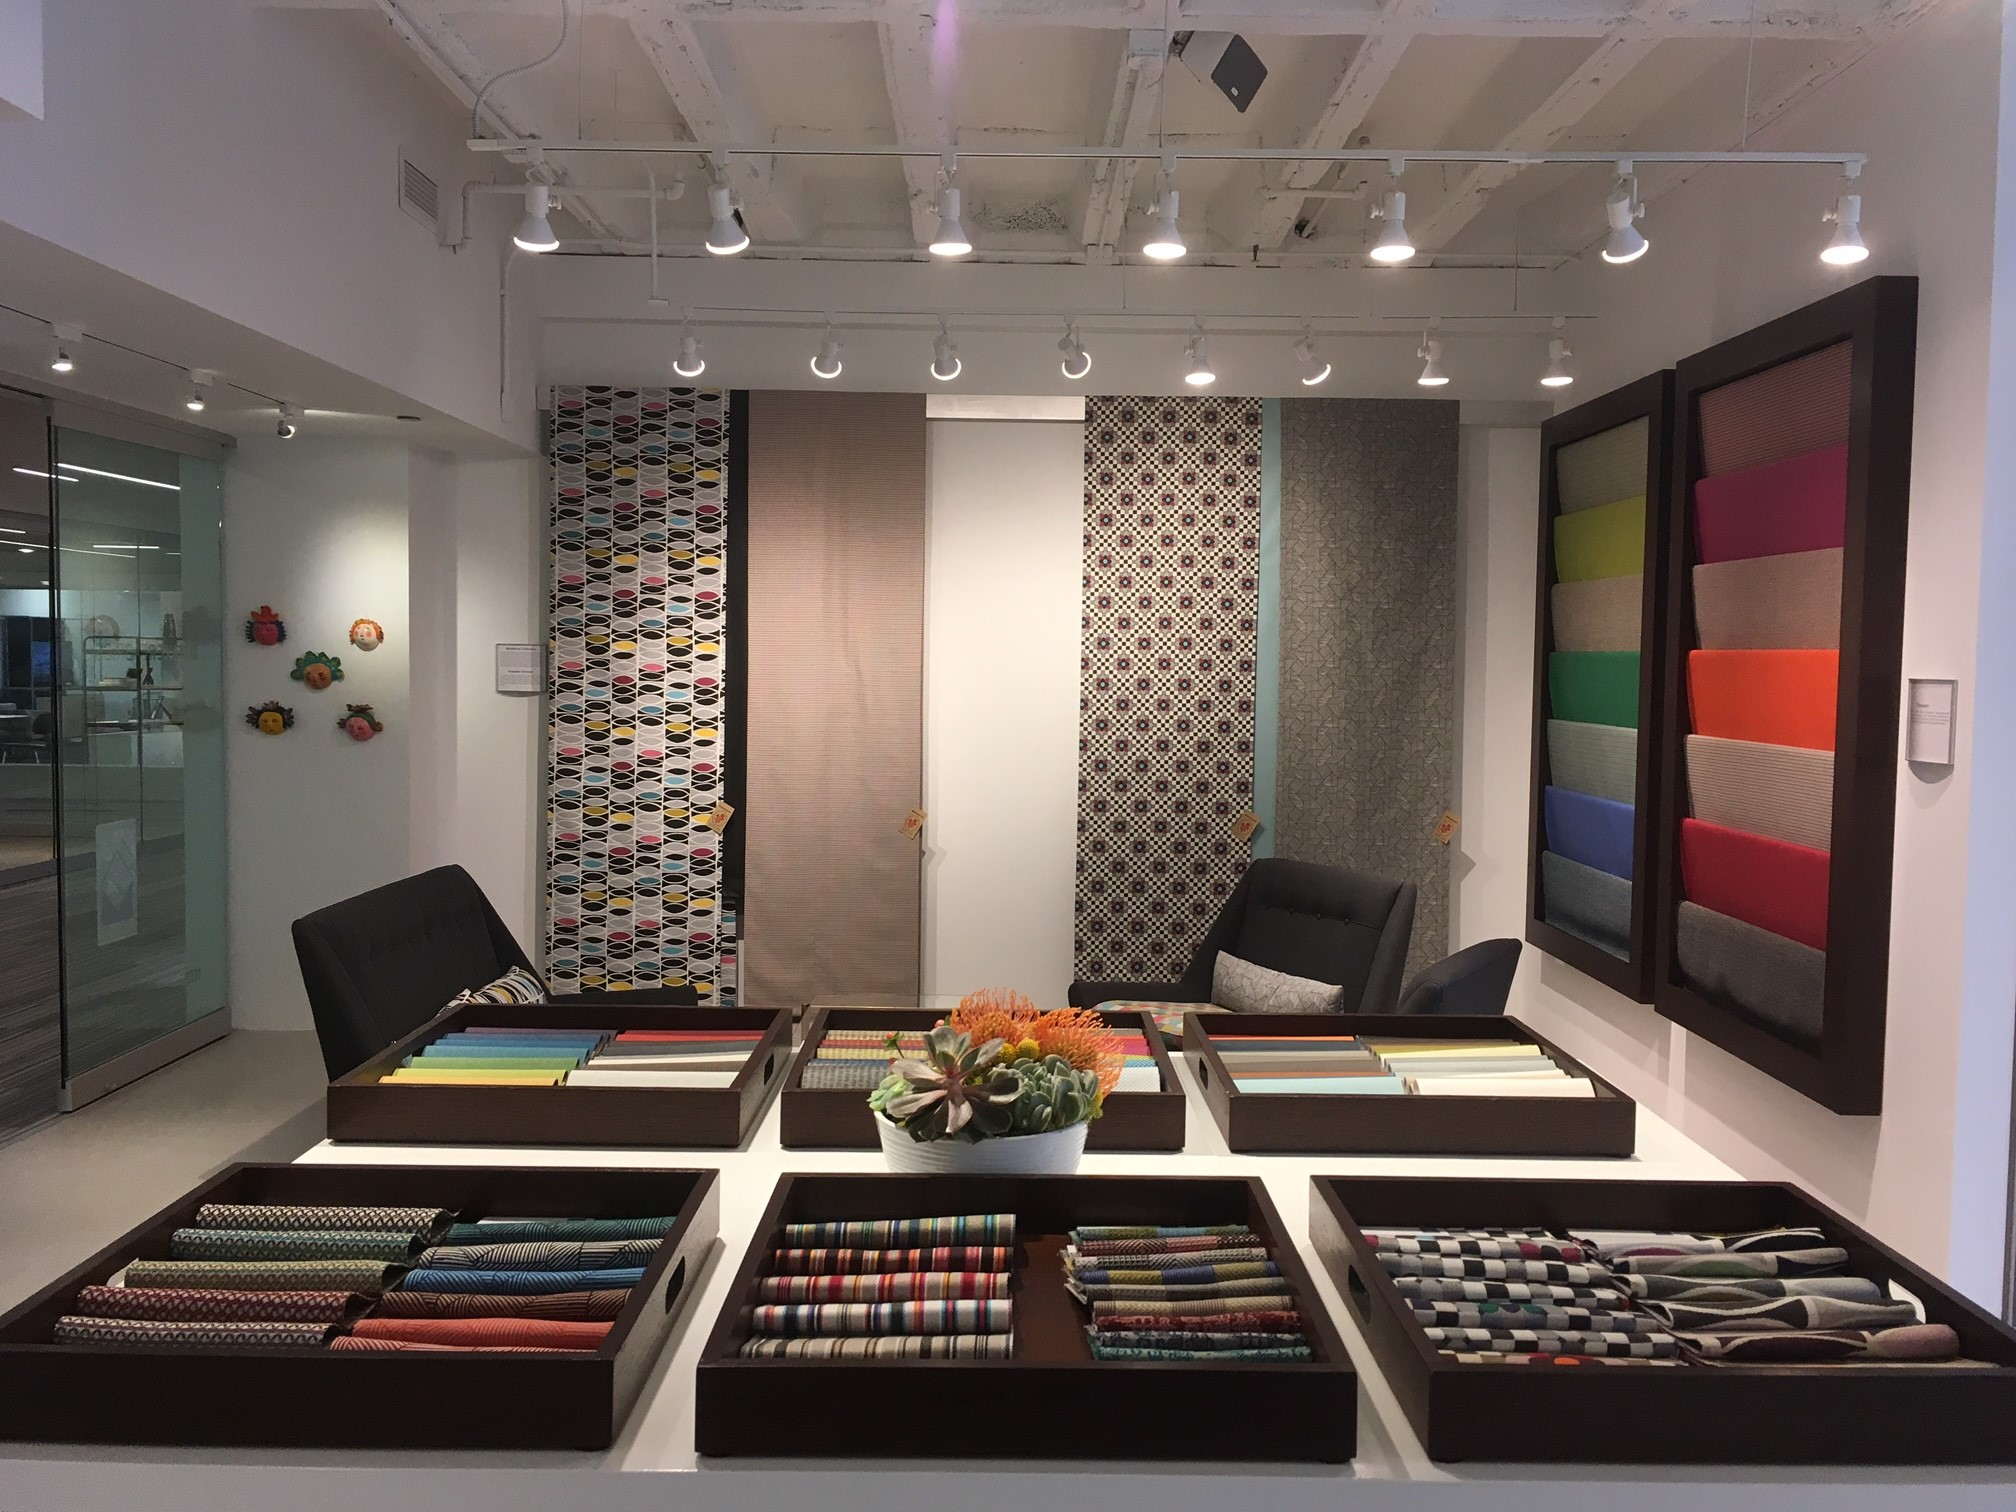 Neocon Mayer Showroom 2018 3.jpg